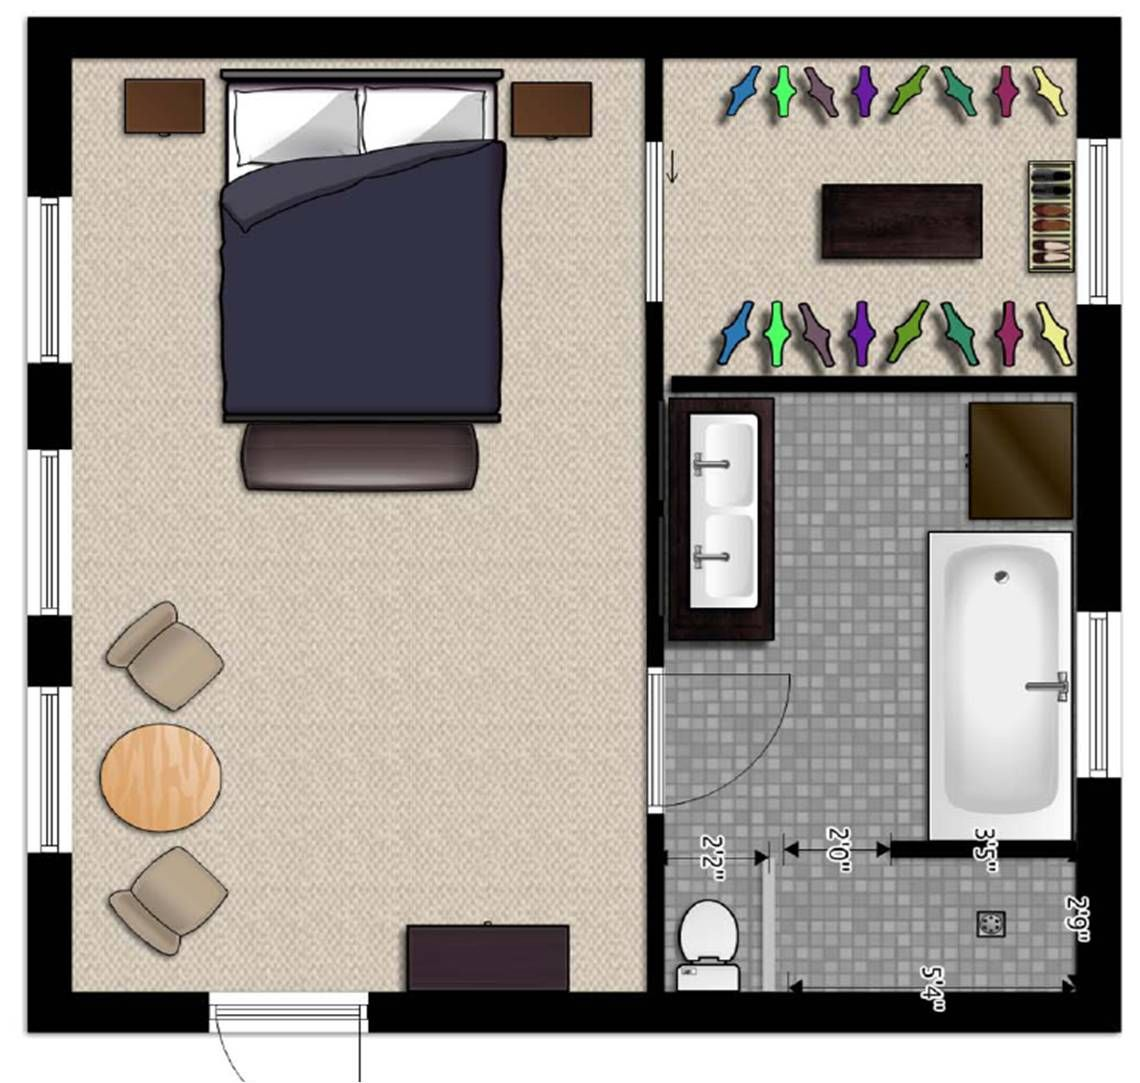 Master bedroom addition floor plans and here is the Bedroom plan design